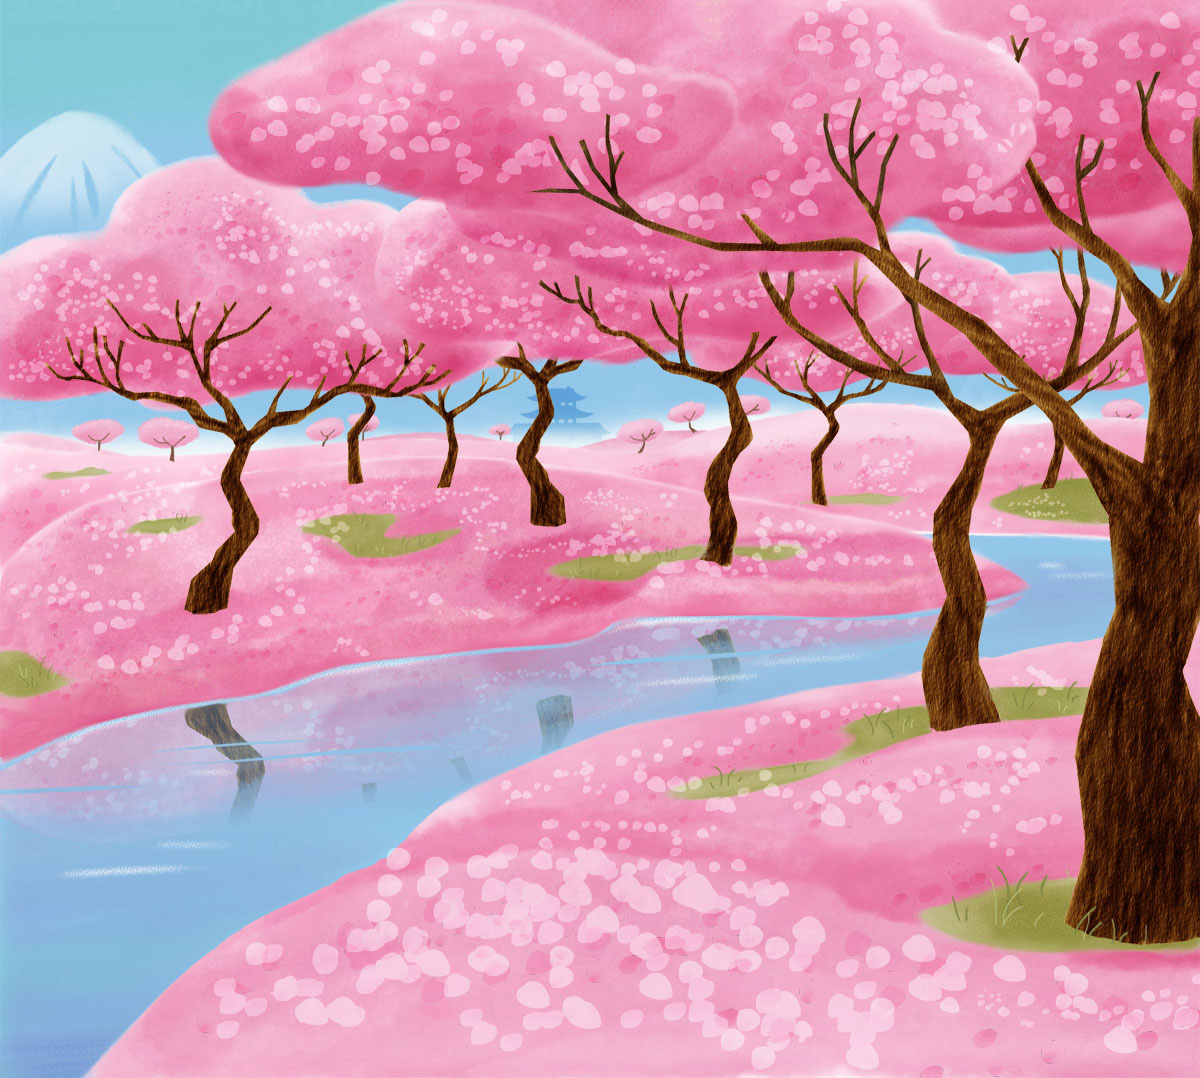 Scenic illustration / Family Storytelling Experience Agency: Belle & Wissell Client: Microsoft (2012)